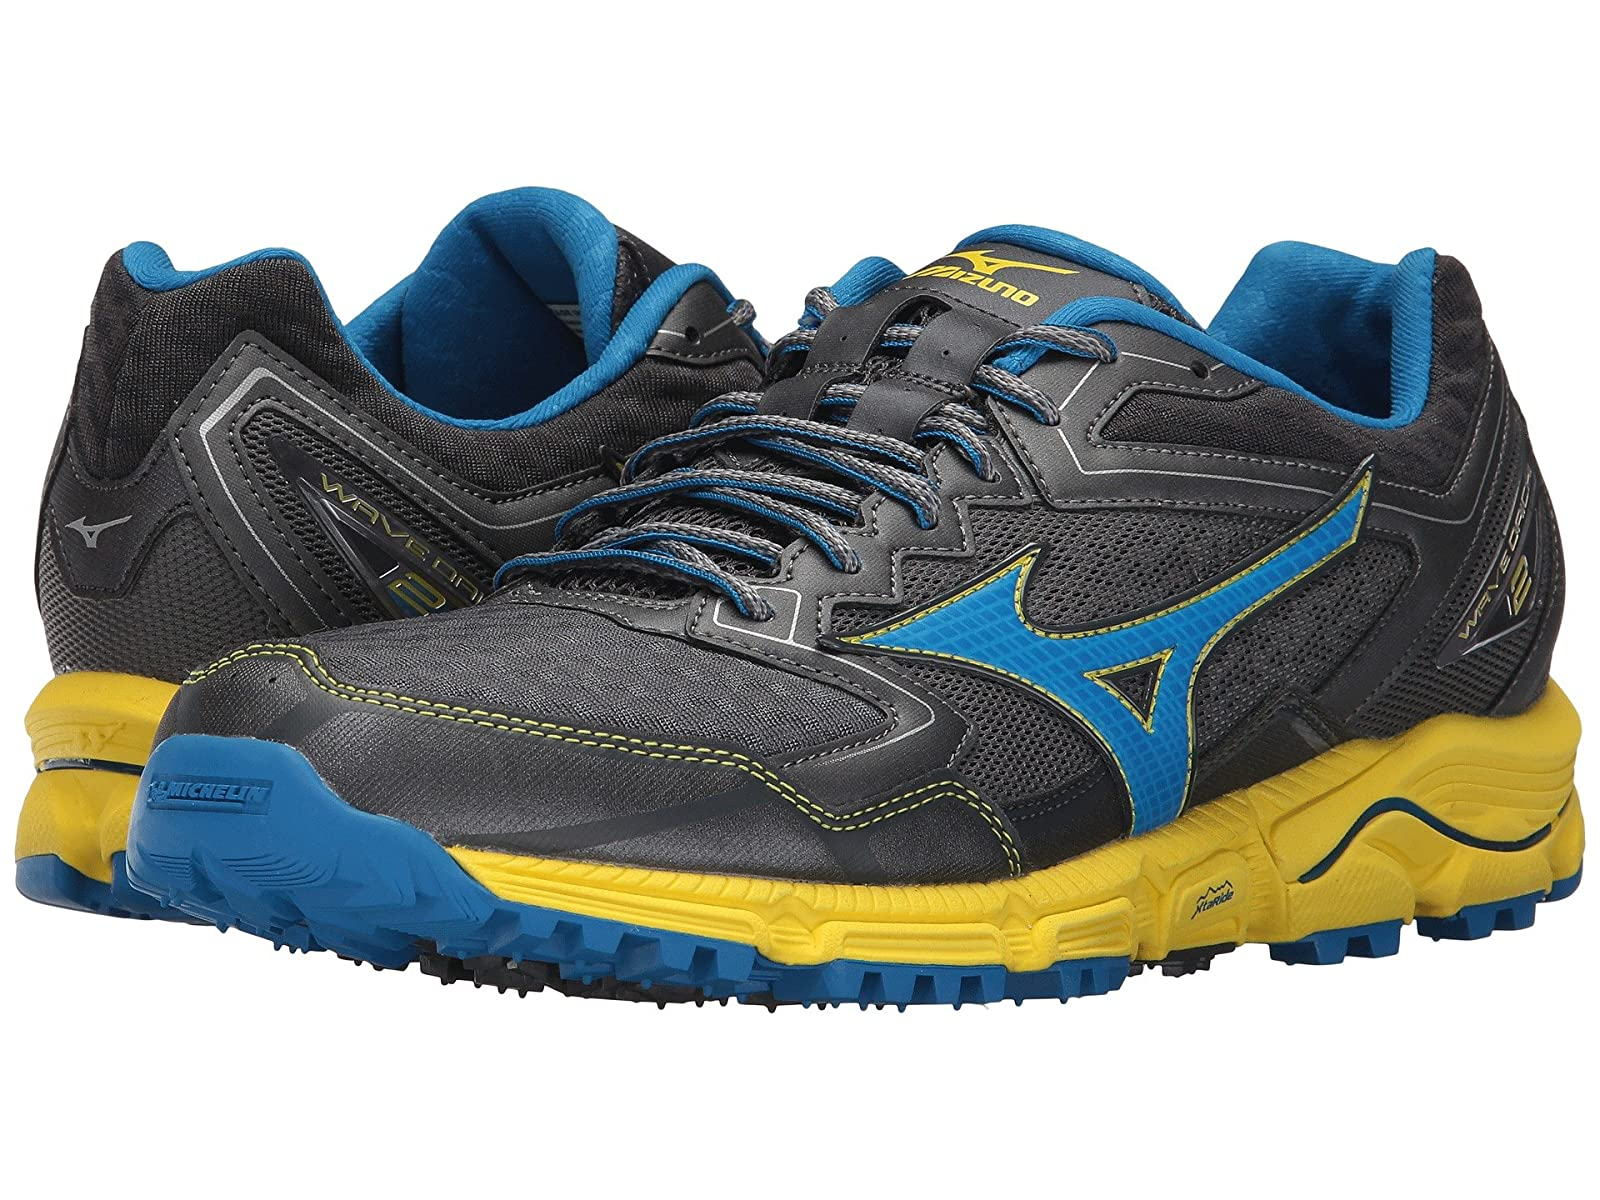 Mizuno Wave Daichi 2Cheap and distinctive eye-catching shoes